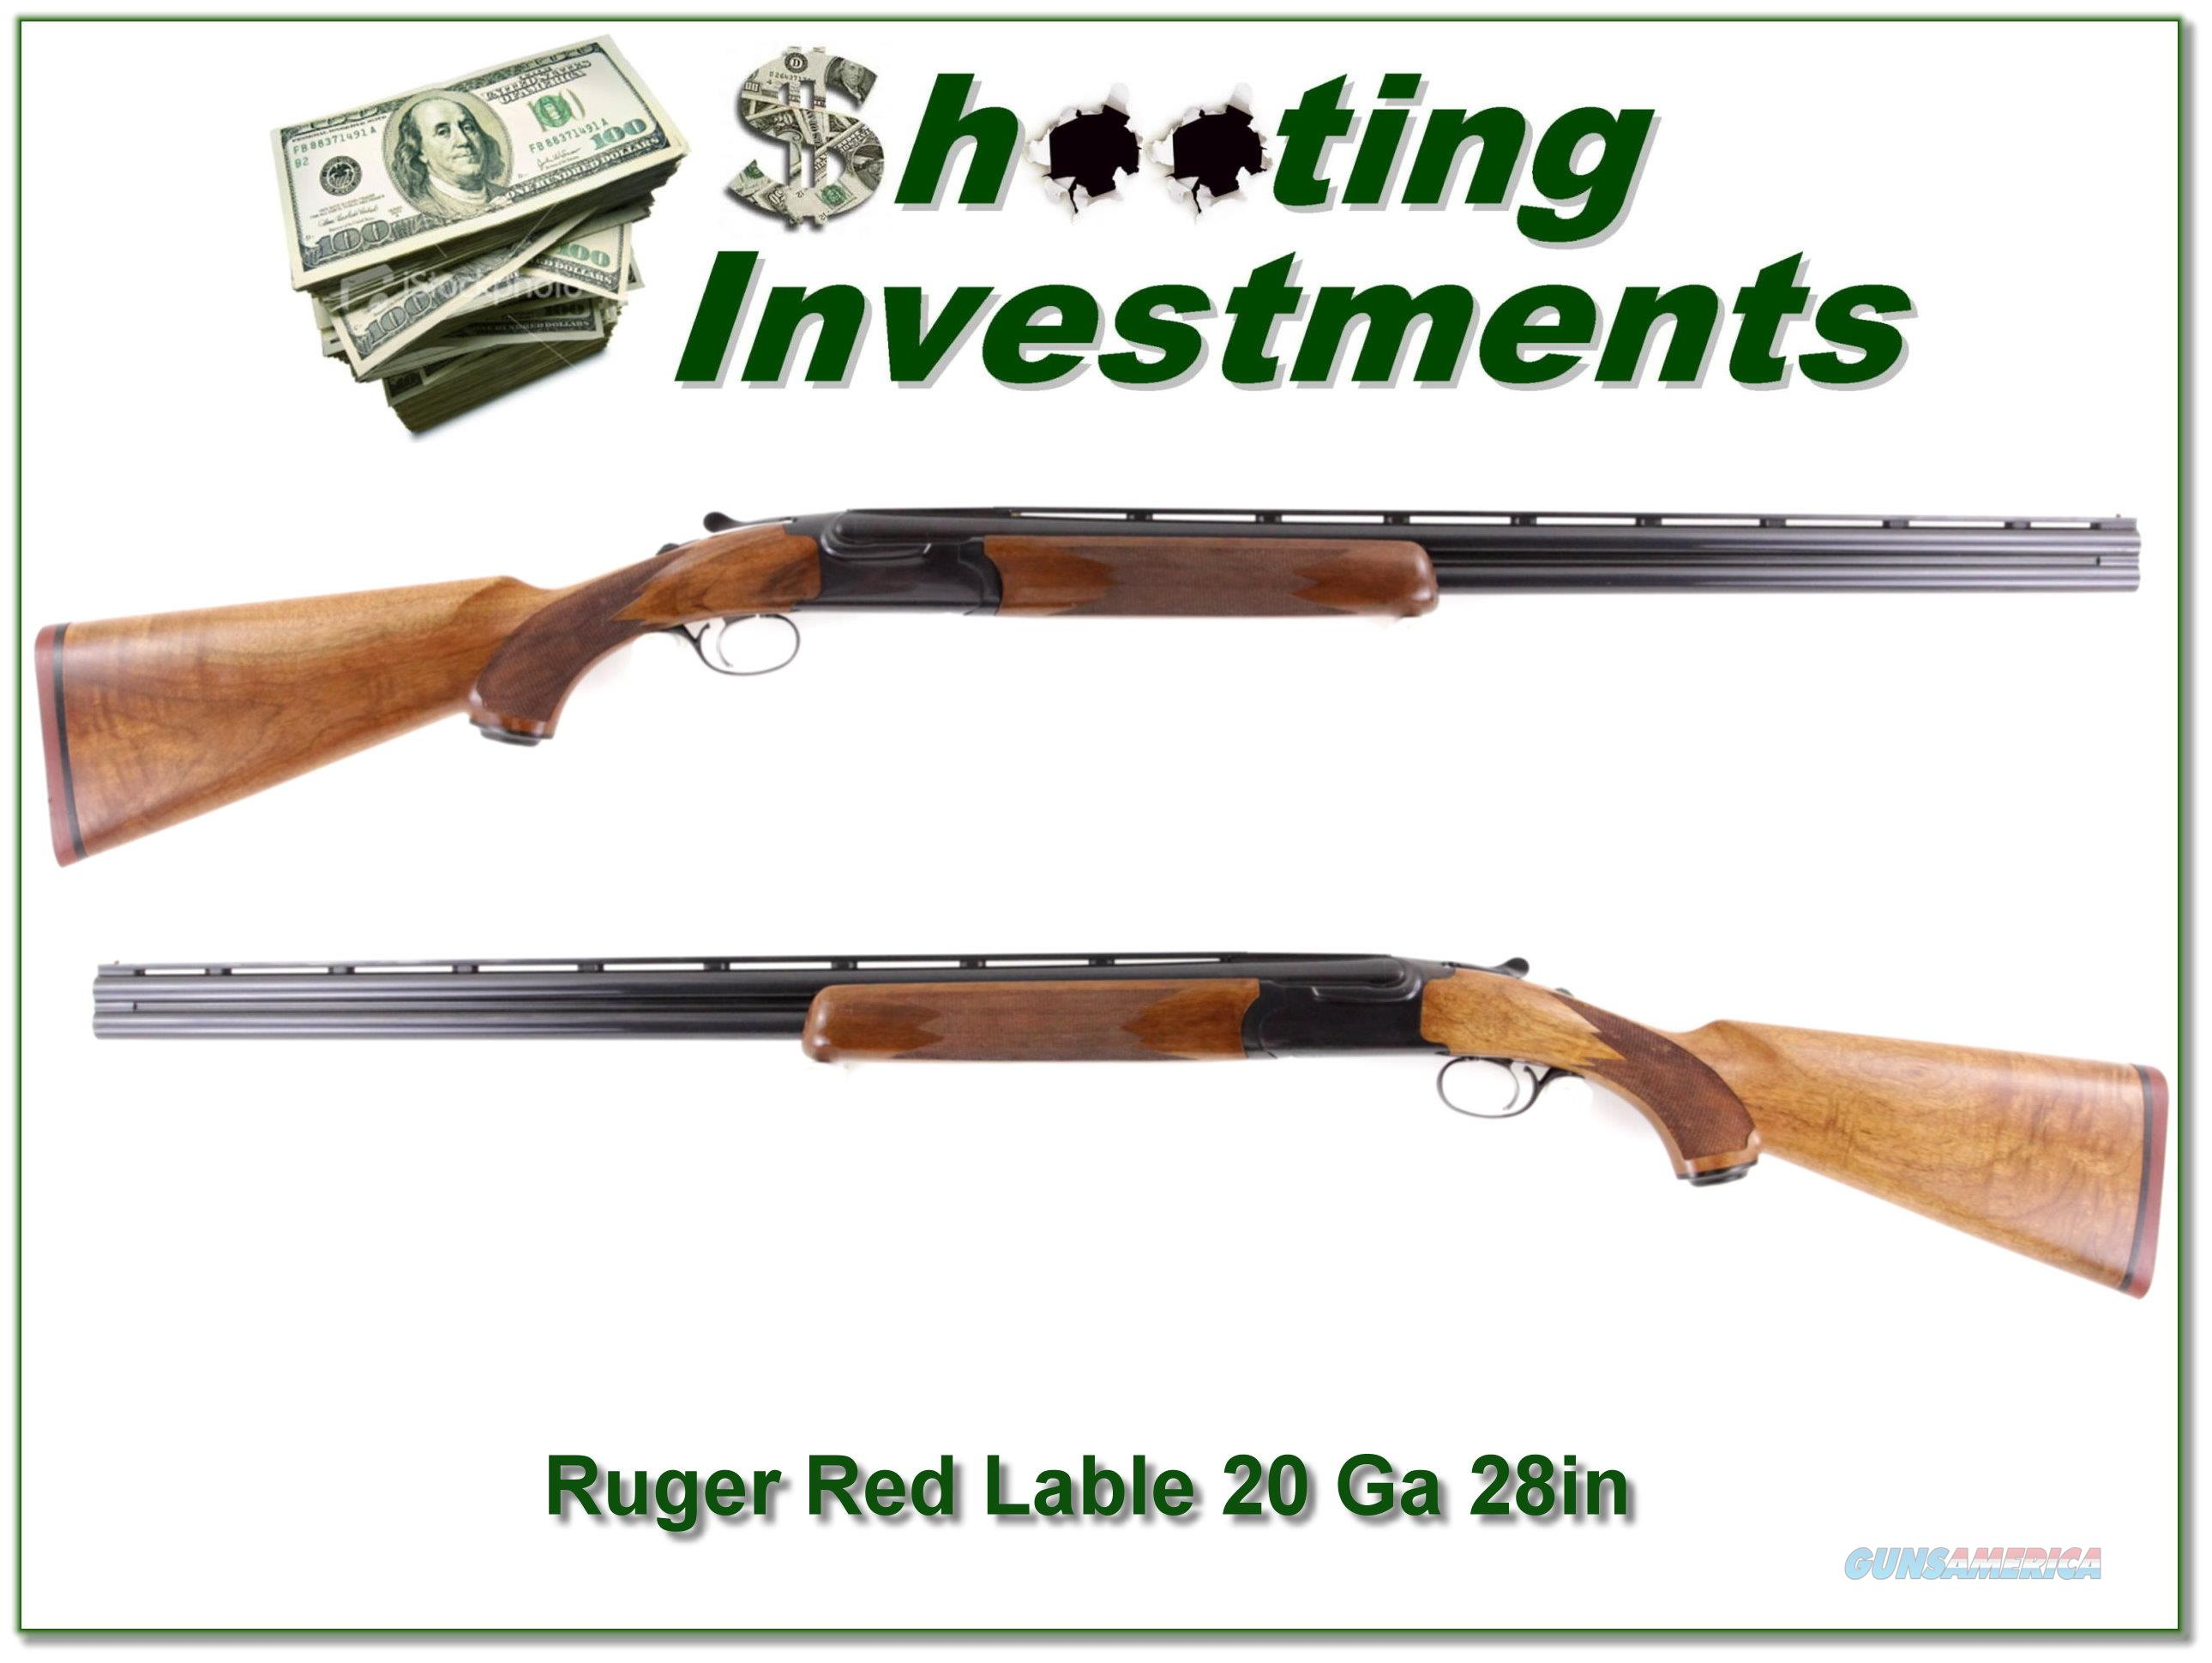 Ruger Red Label 20 Ga 28in nice wood!  Guns > Shotguns > Ruger Shotguns > Hunting